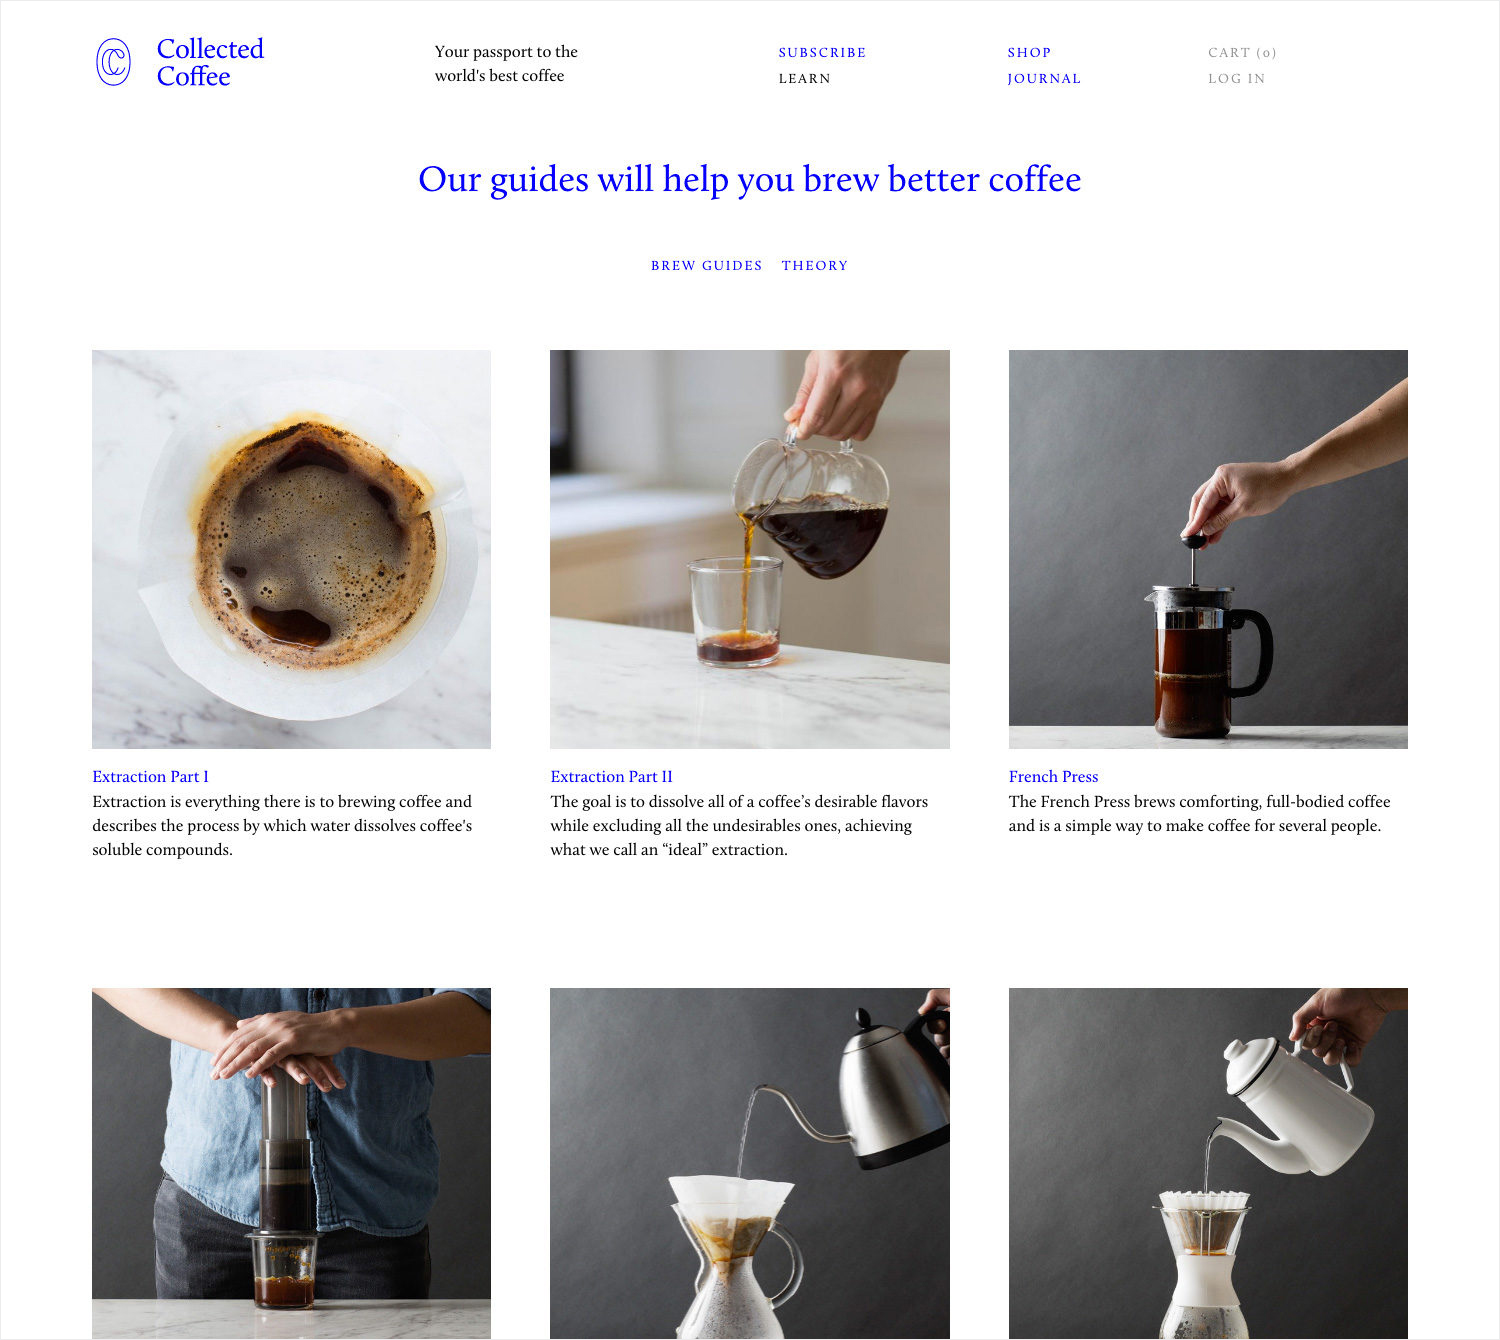 Brand identity and website for New York coffee subscription service Collected Coffee by Fivethousand Fingers